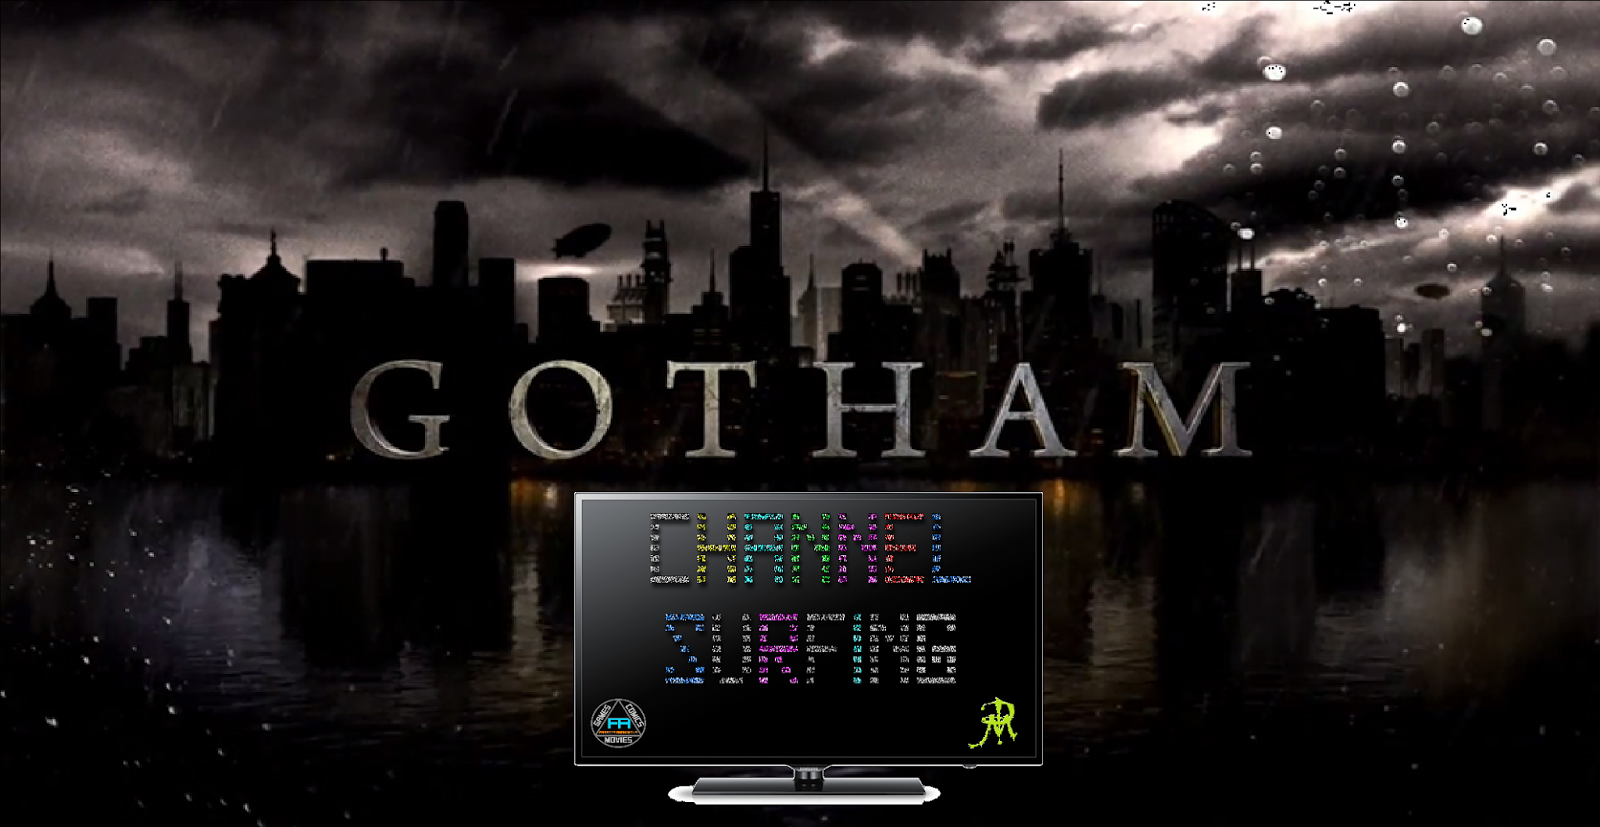 FOX's Gotham News and Rumors